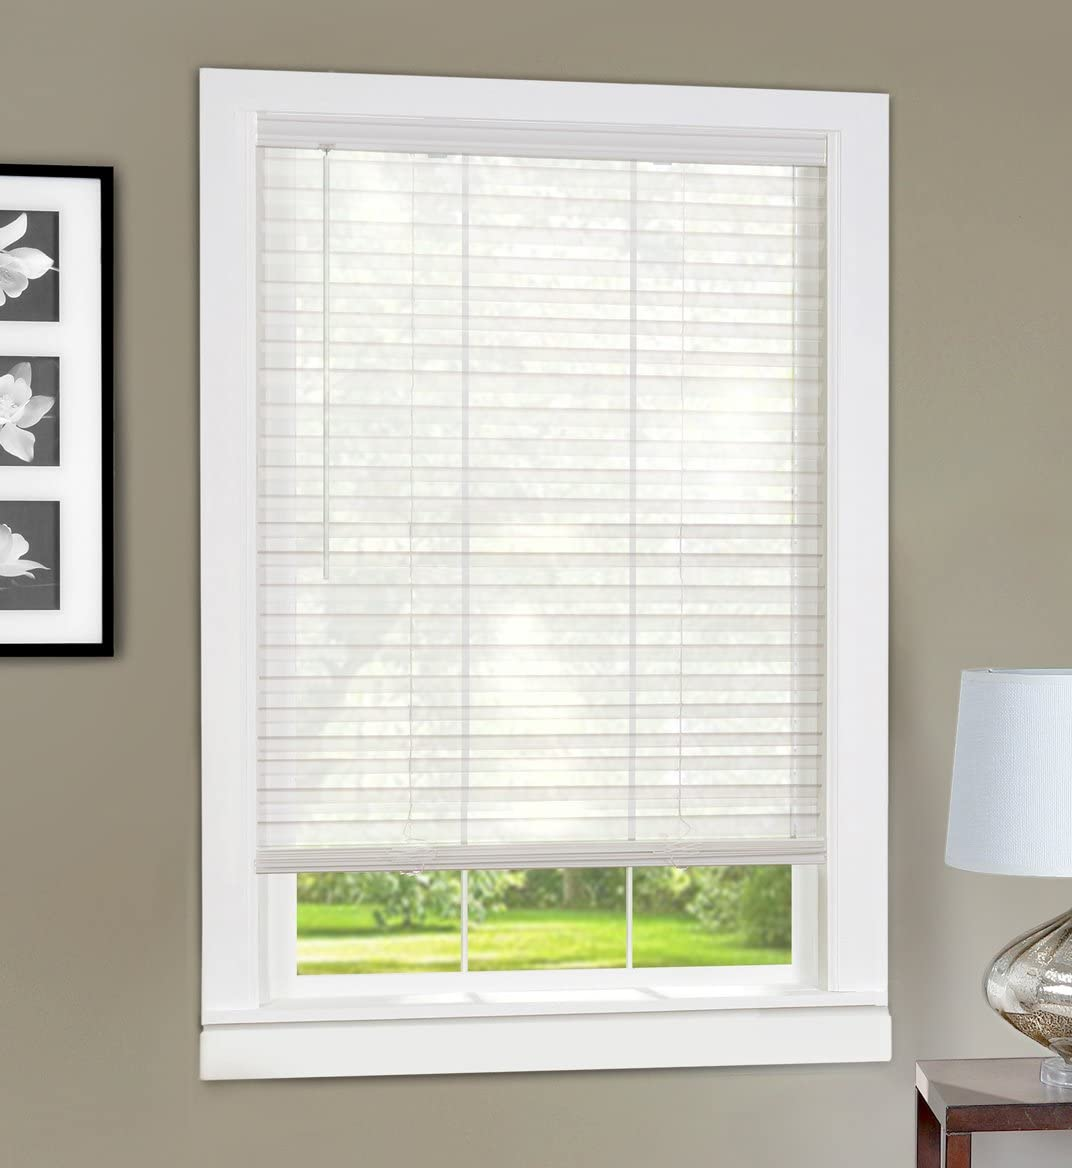 Achim Home Furnishings Light Vane 2-Inch Slat Blind, 36 by 64-Inch, White